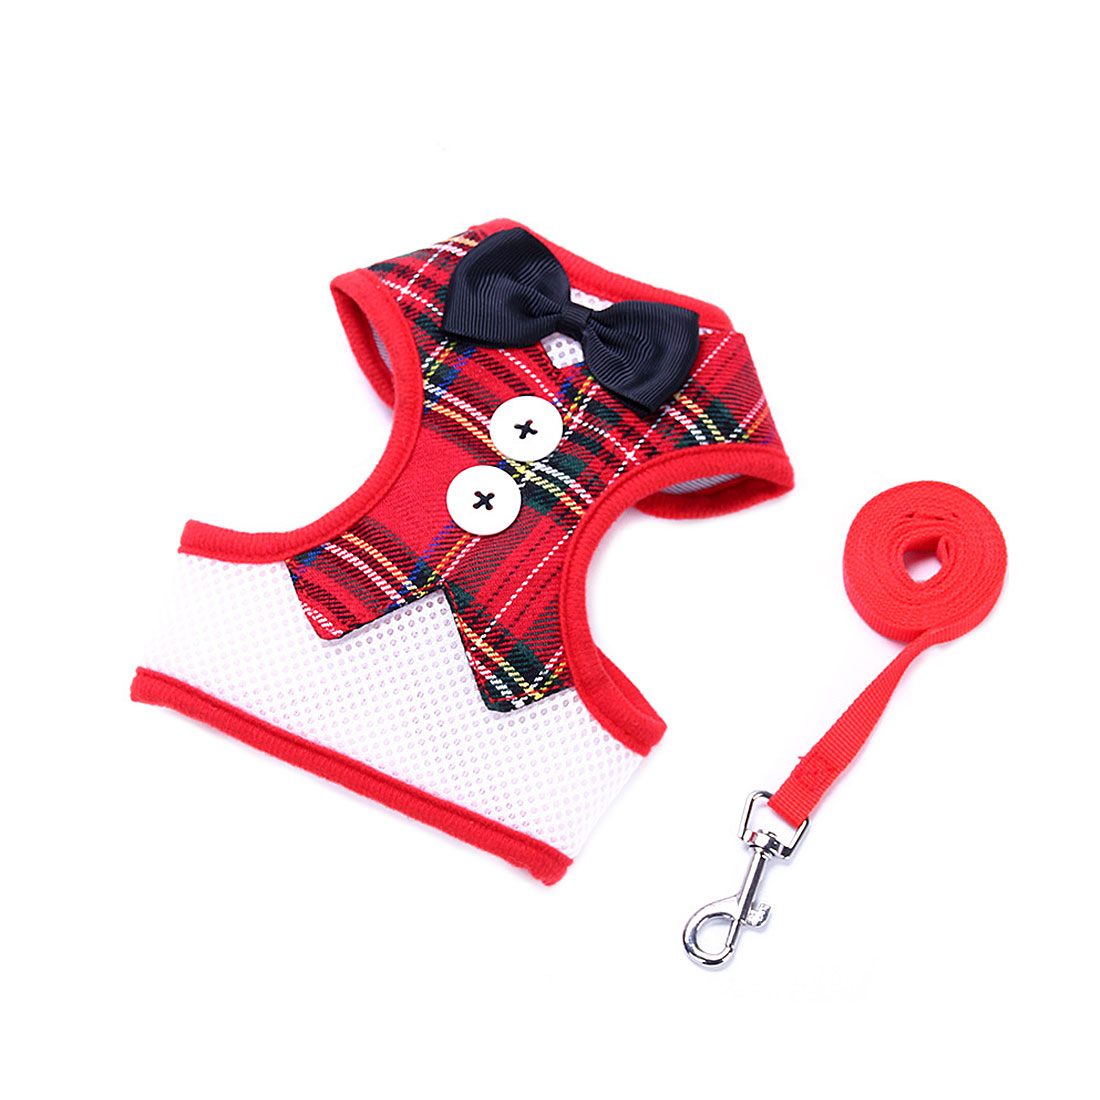 Adjustable Padded Small Dog Harness Breathable Dog Vest Bowtie Gentleman Suit Red Grid L